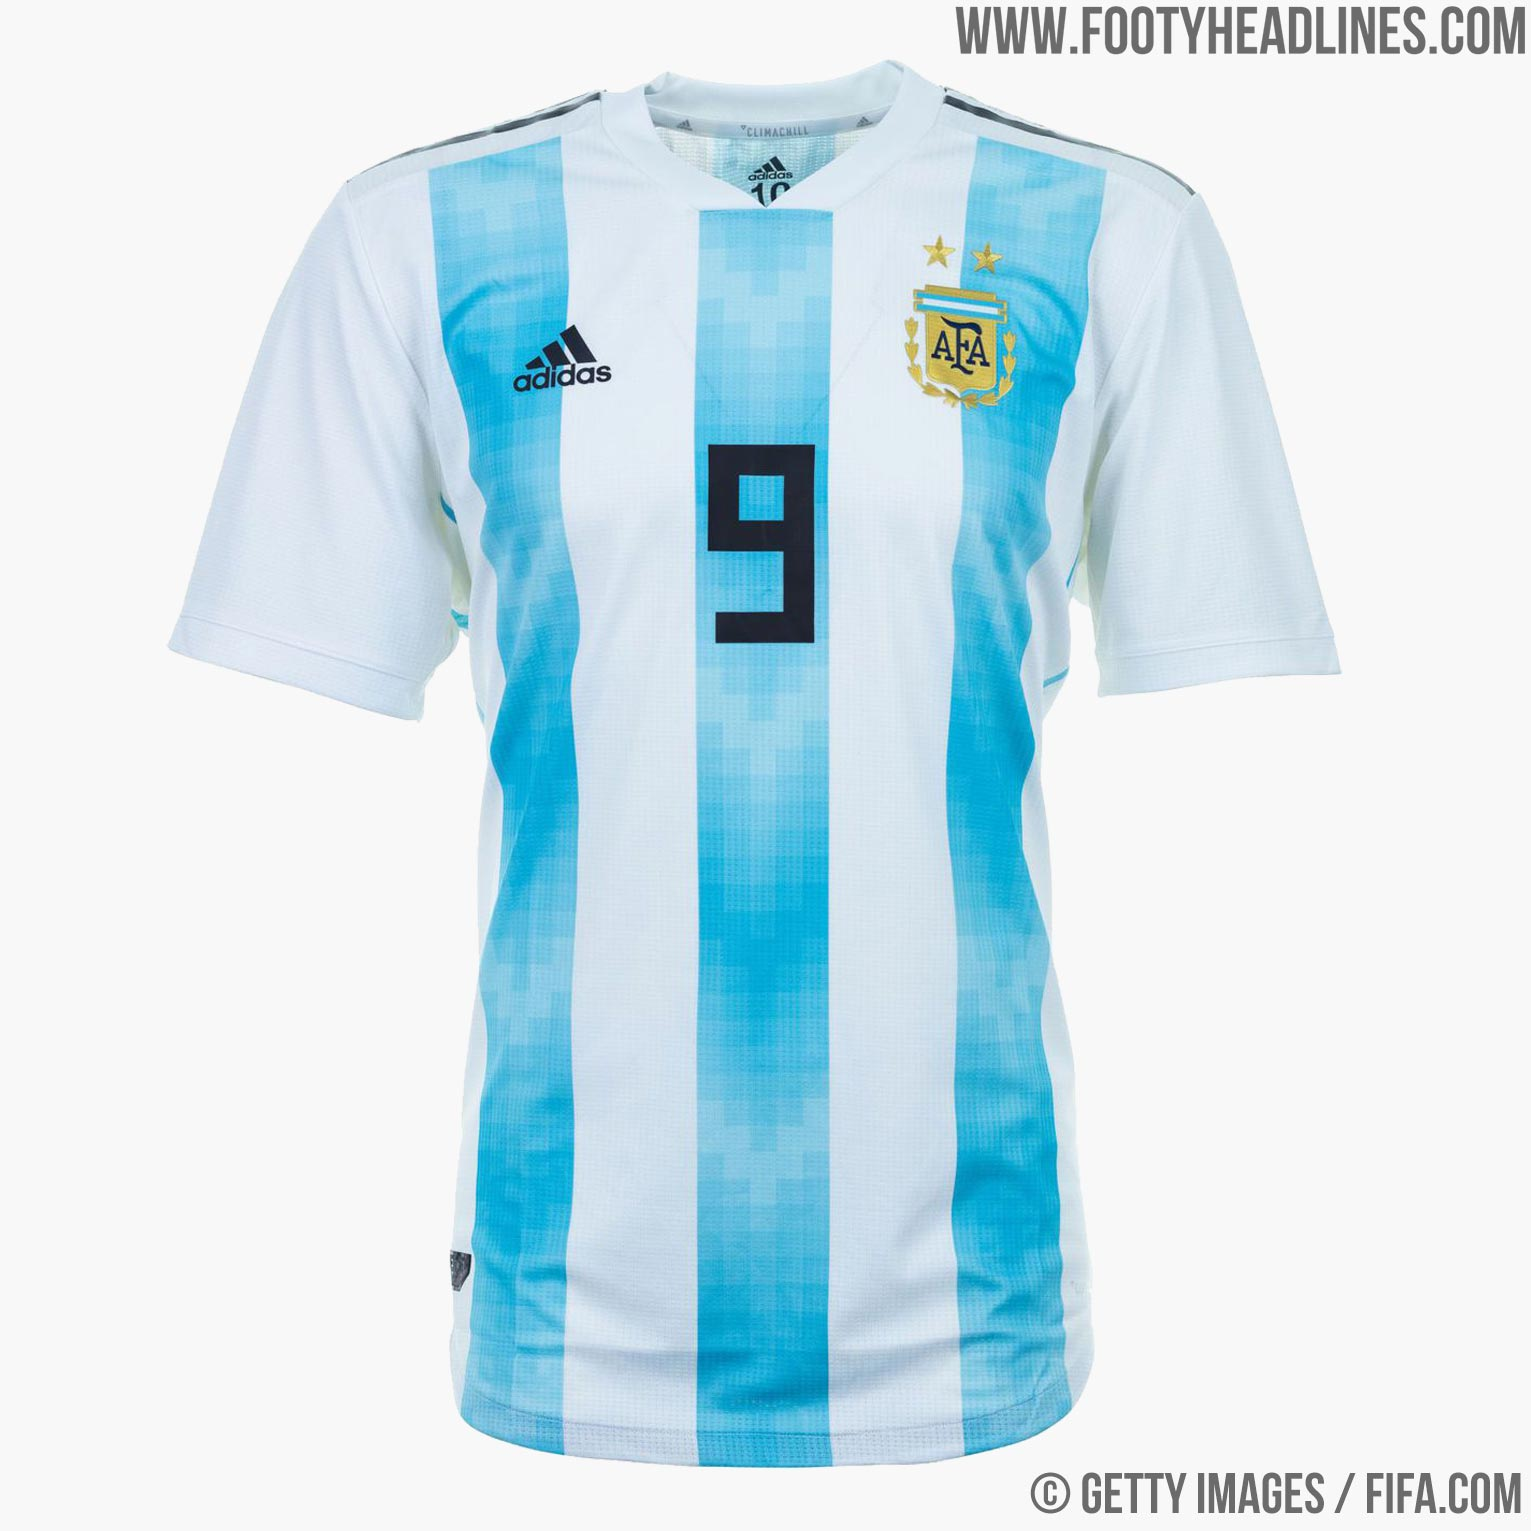 8938aae05 Argentina 2018 World Cup Home Kit Buy now. Free worldwide delivery on all  orders